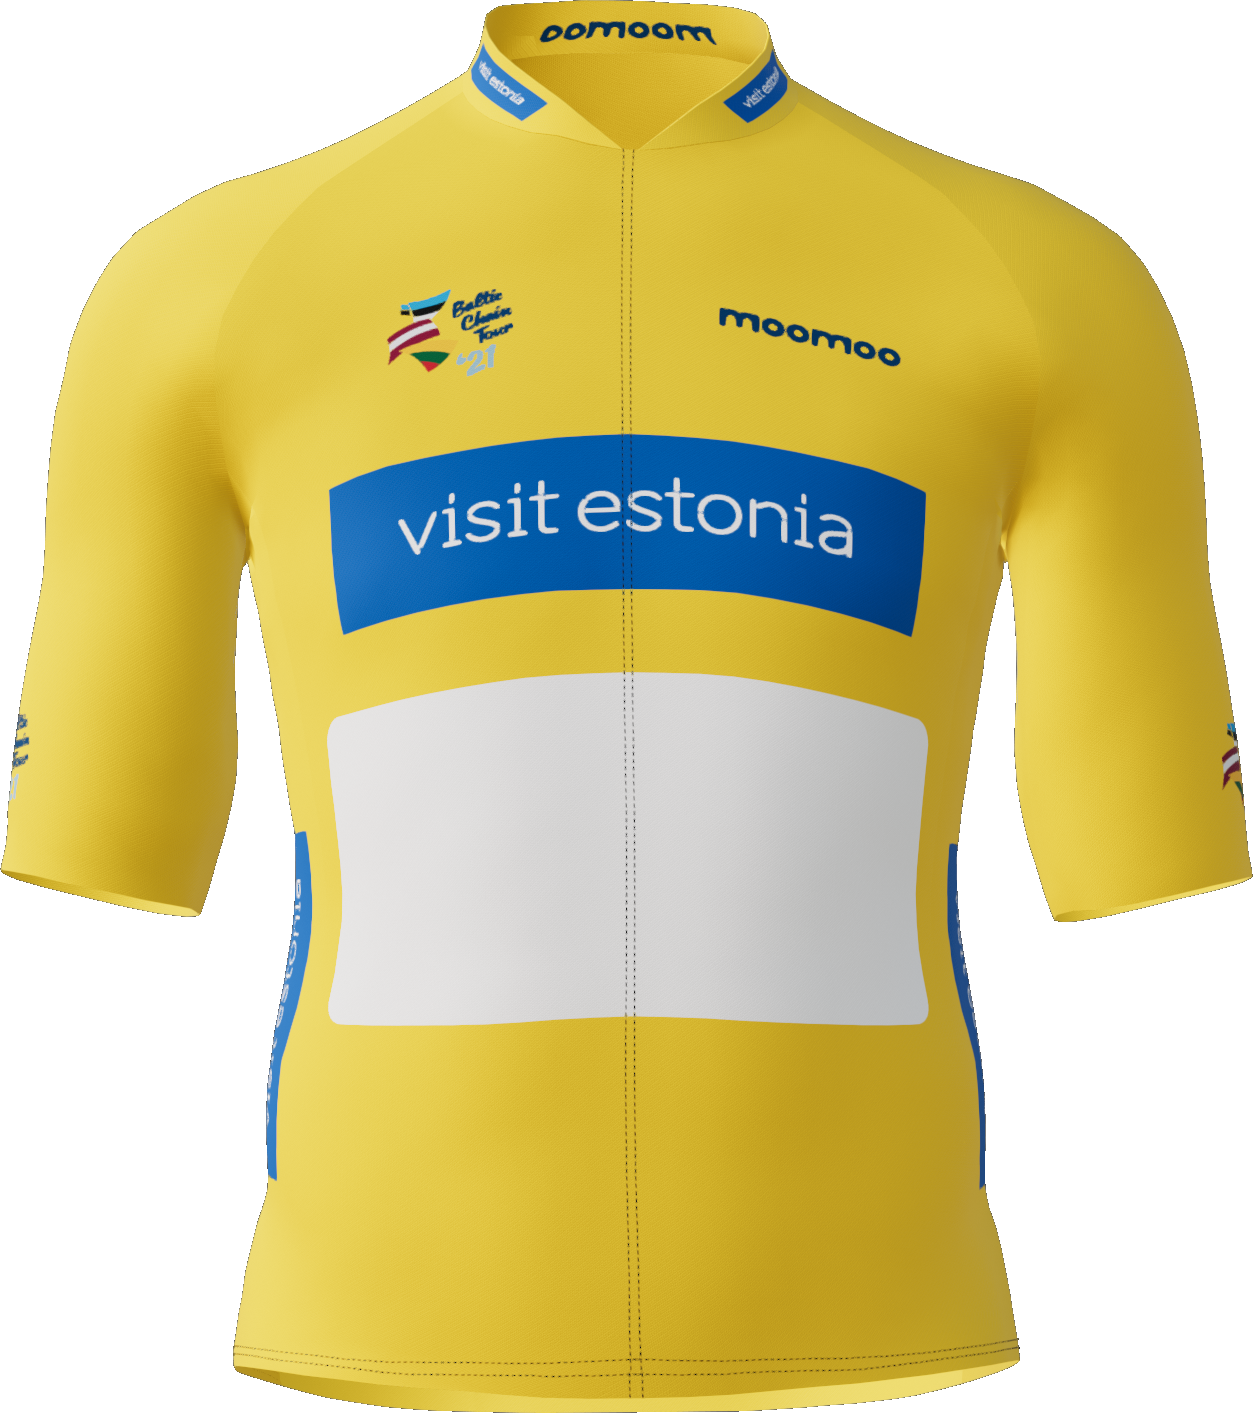 Tour Overall Leader